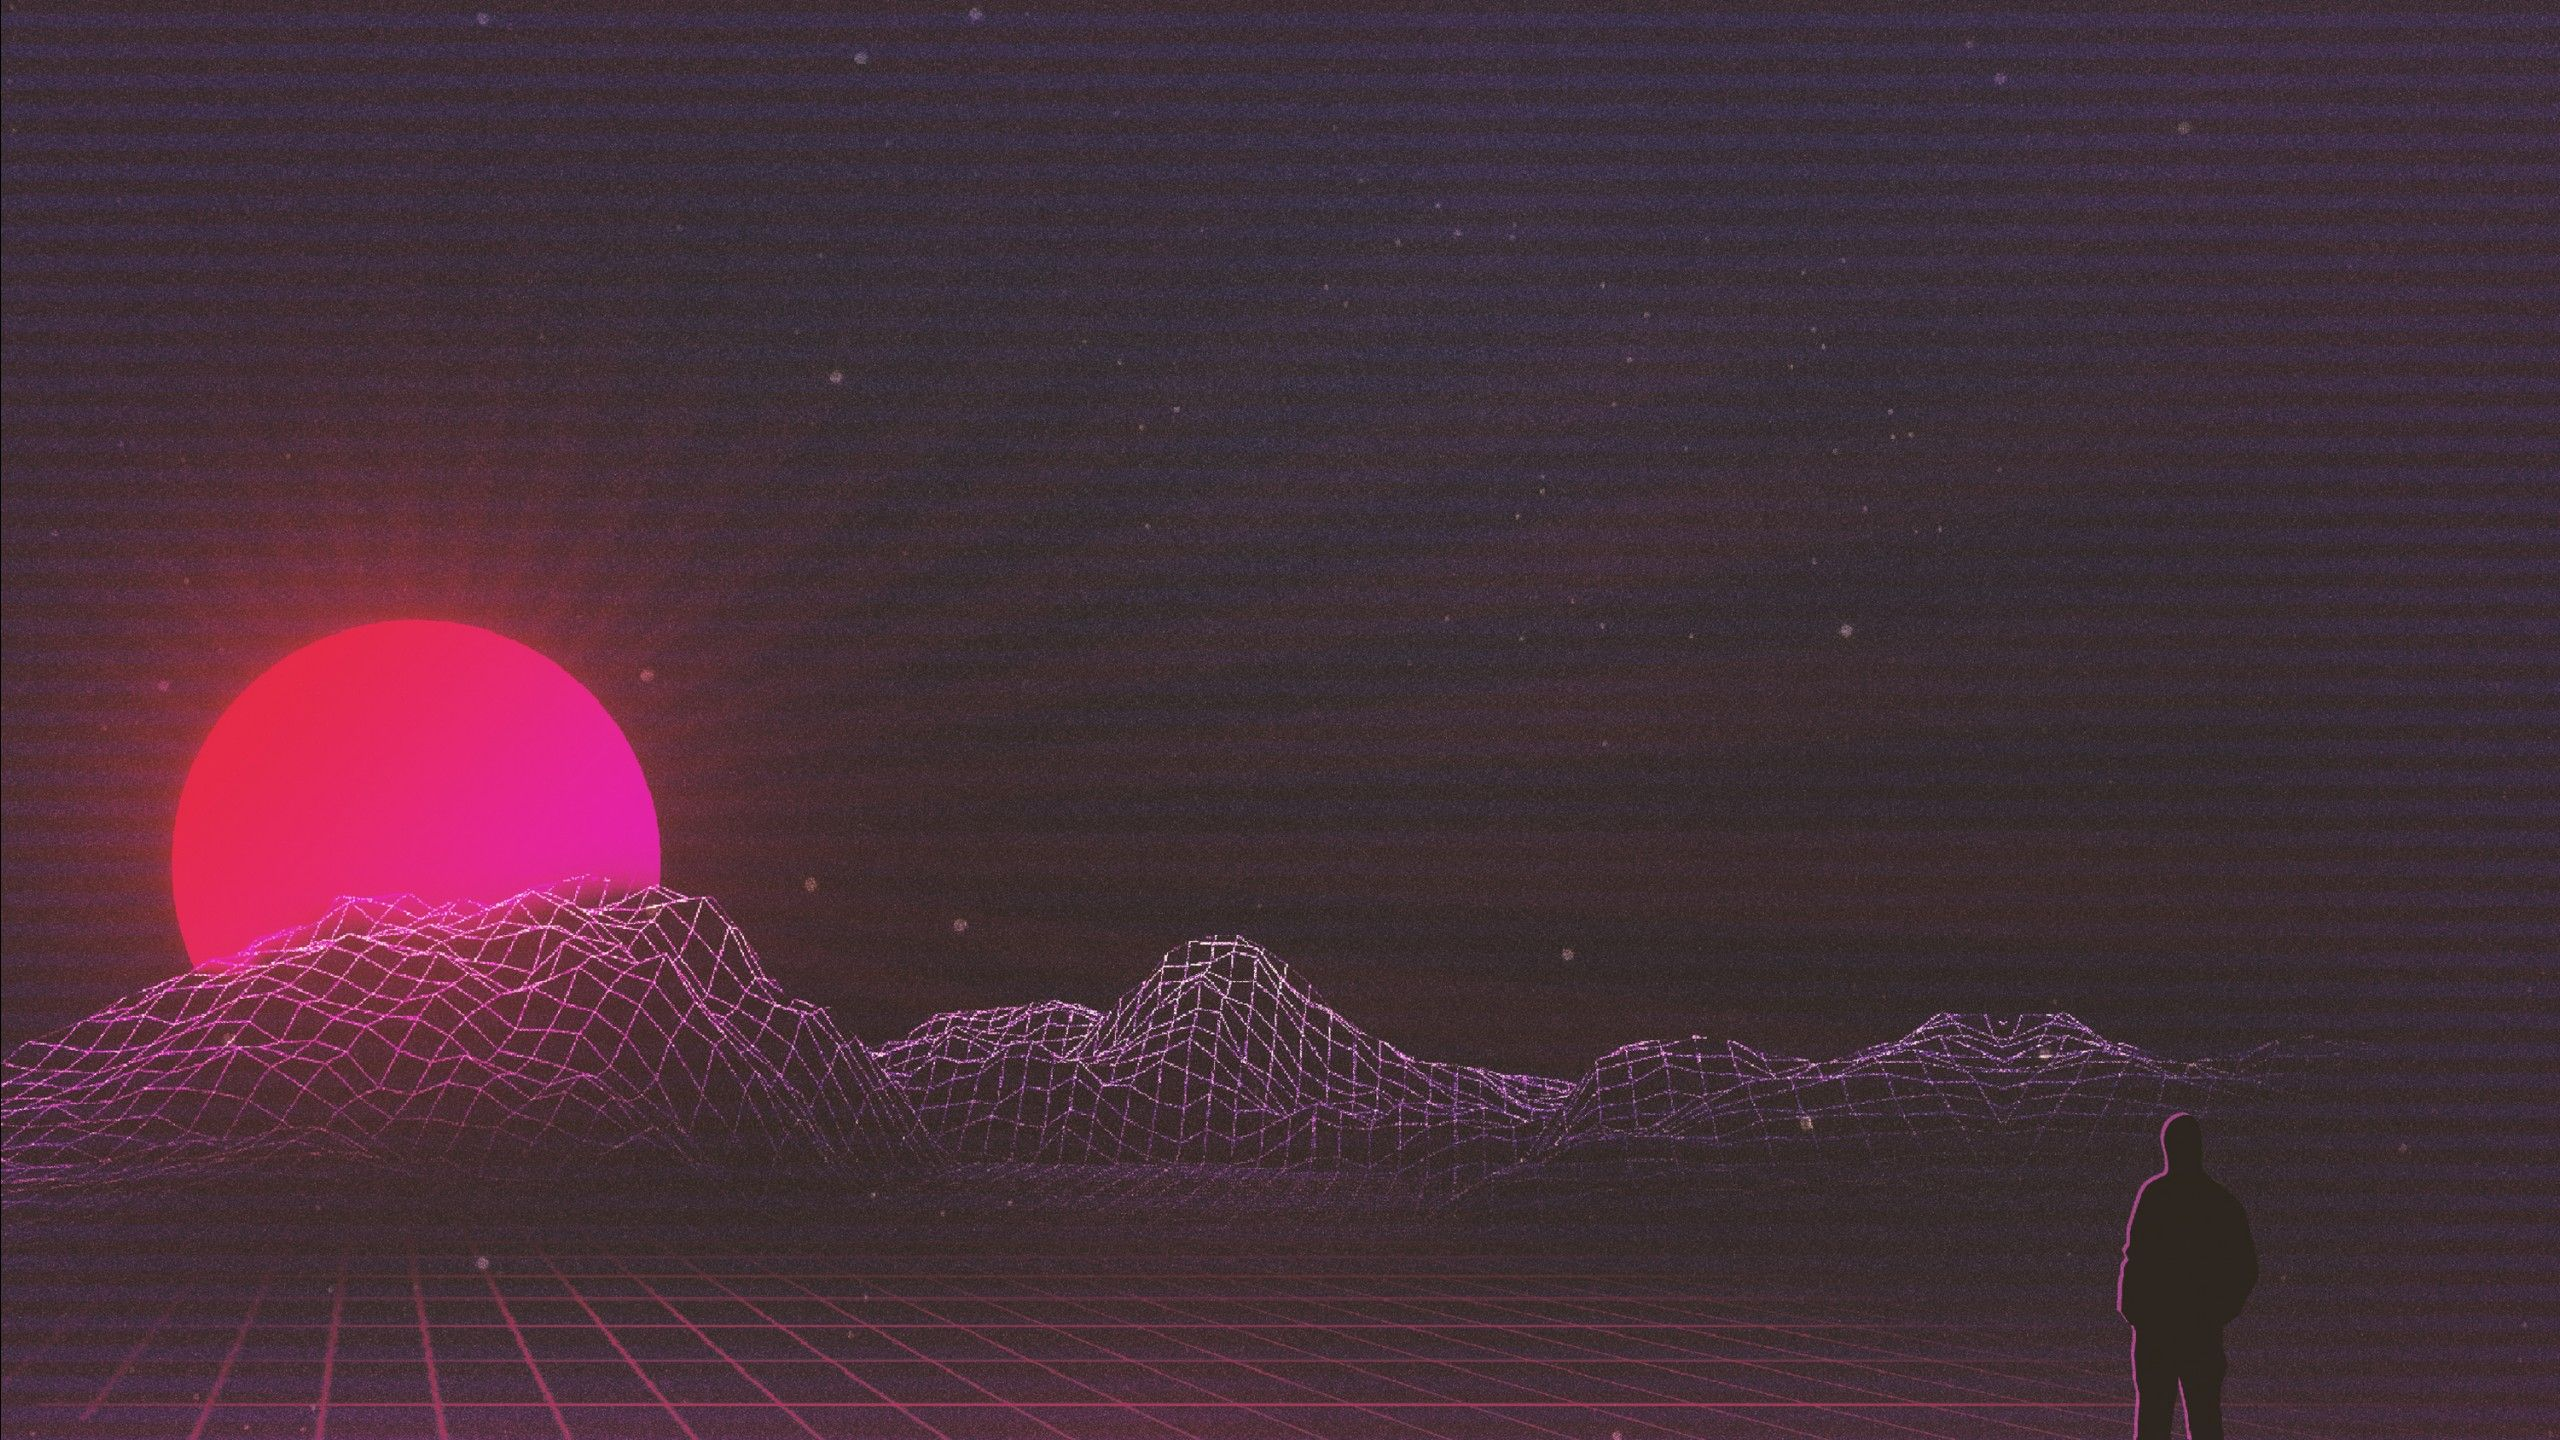 Sunset Retrowave 2560 1440 Hd Wallpaper Pinterest Wallpaper